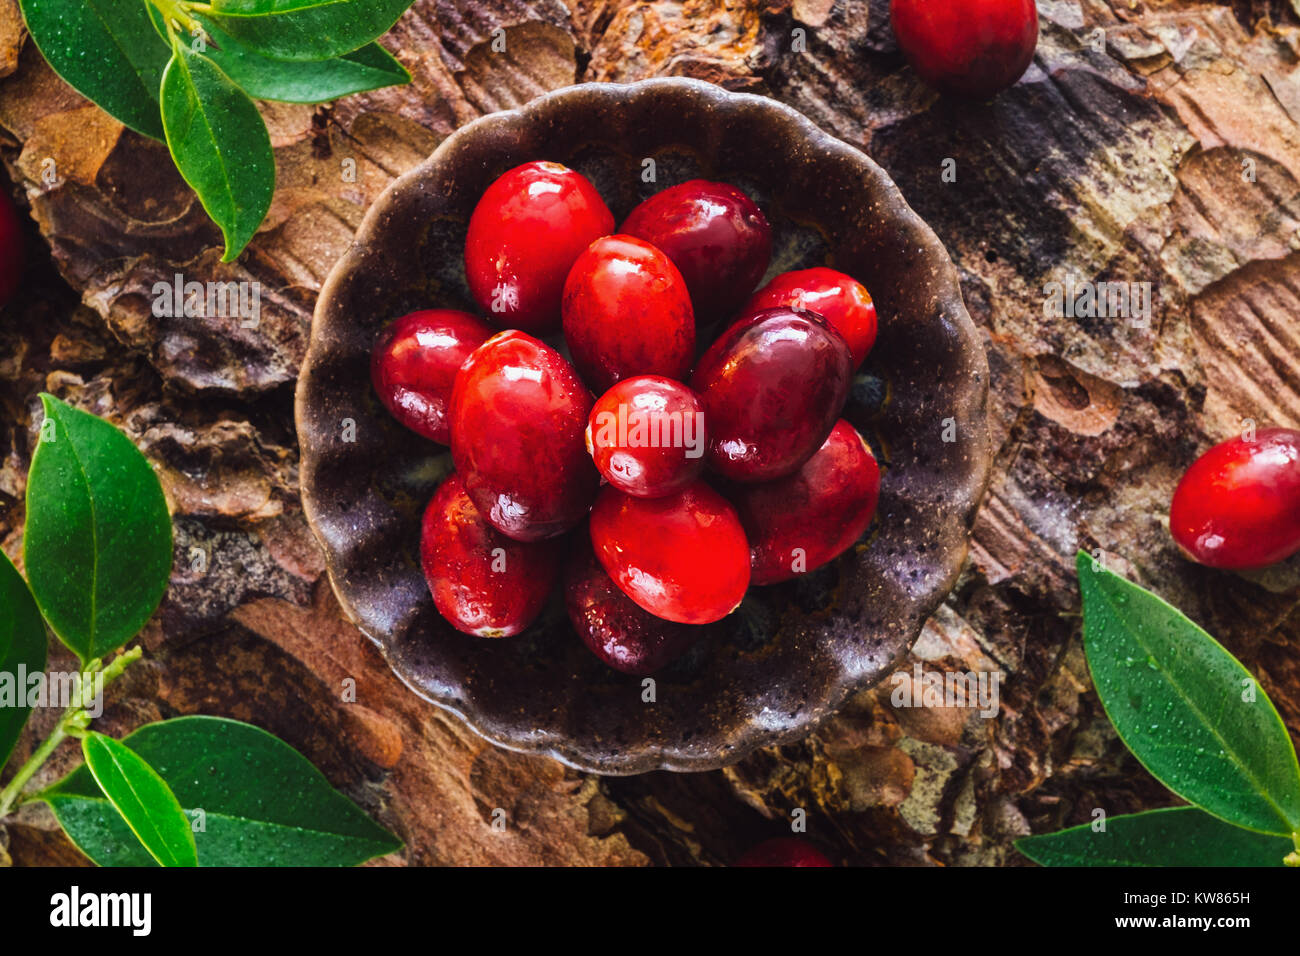 Fresh Cranberries on Natural Wood Surface - Stock Image